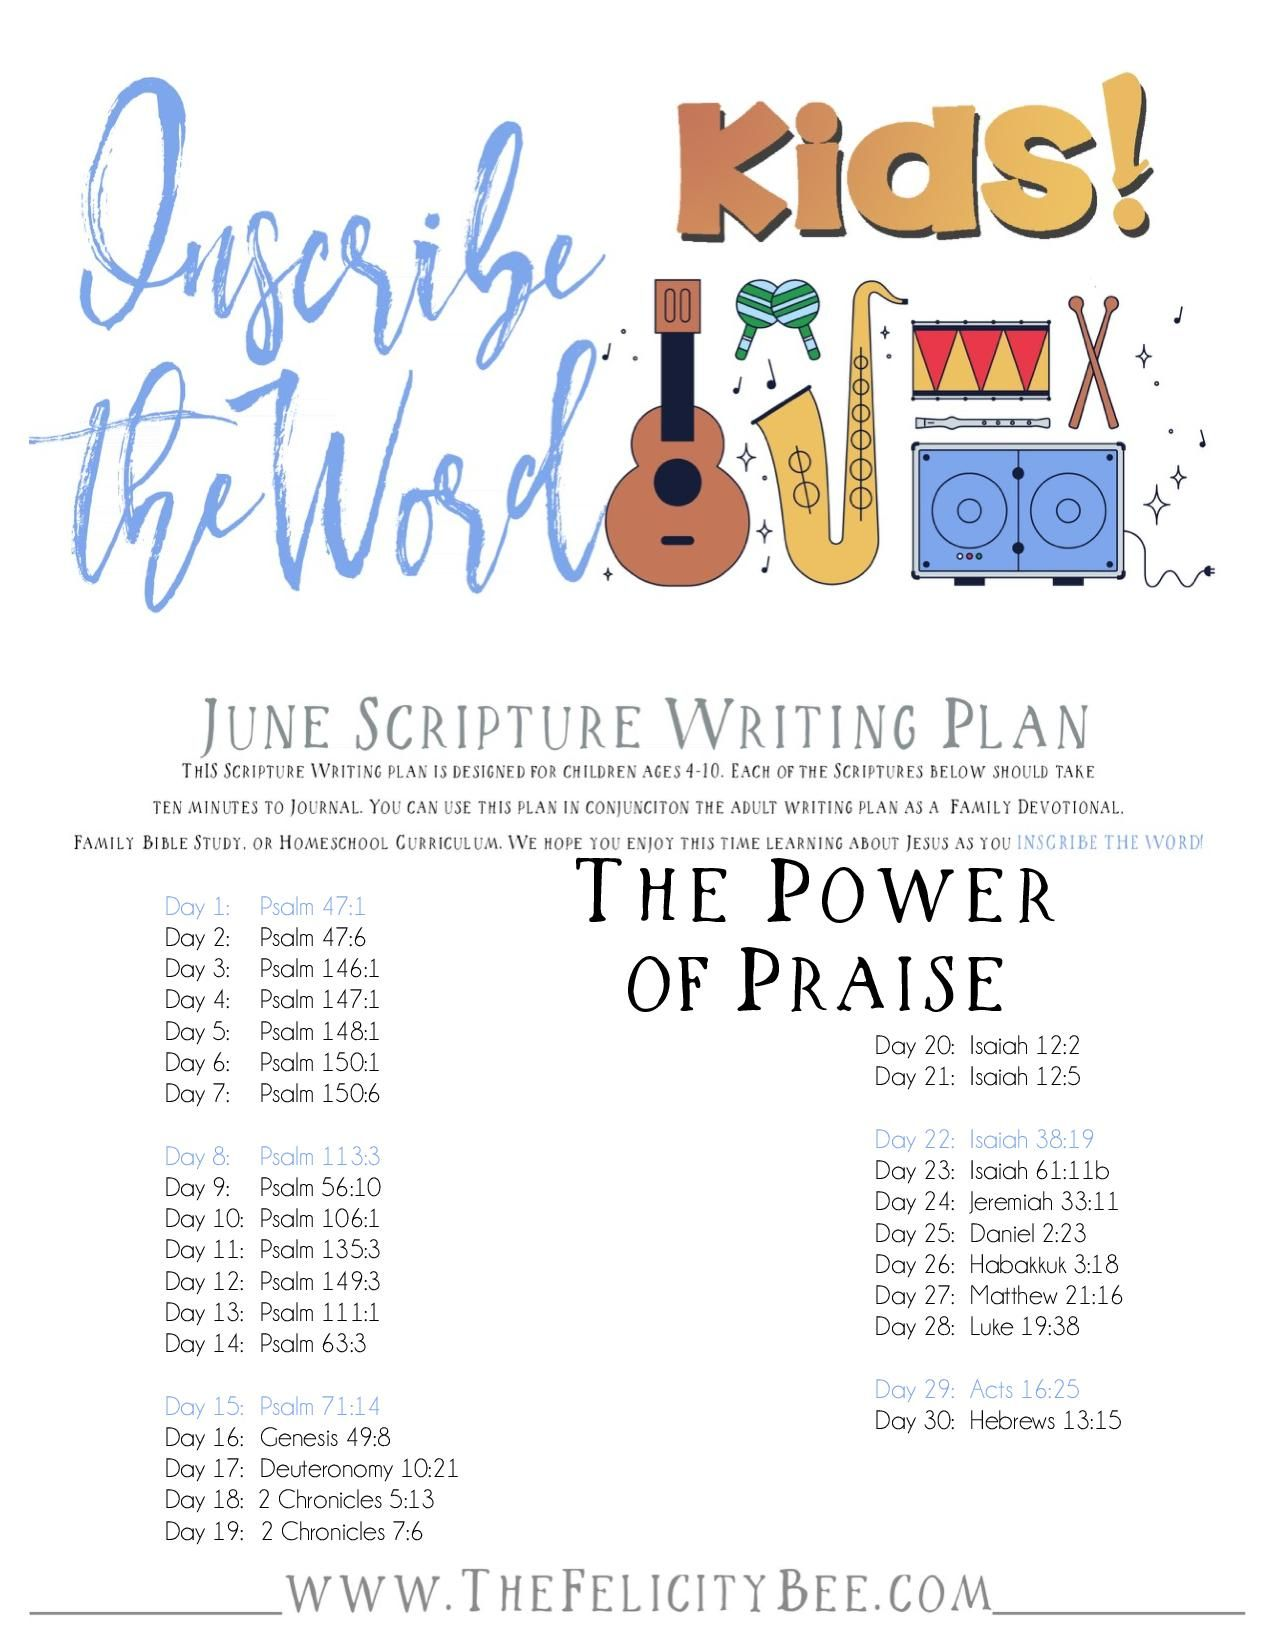 Inscribe The Word Kids June Scripture Writing Plan